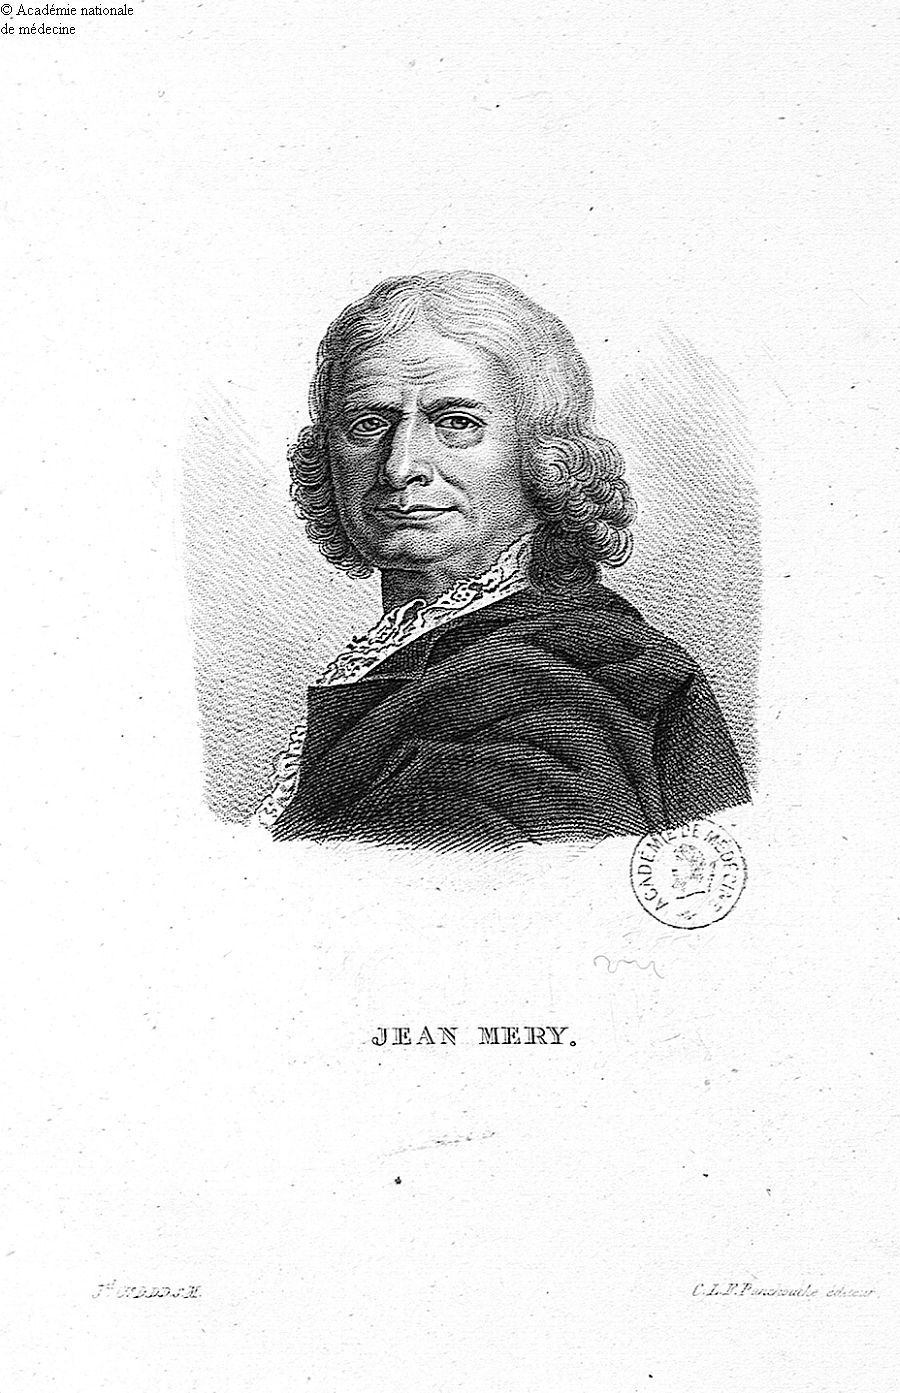 Mery, Jean (1645-1723) -  - anmpx21x2292